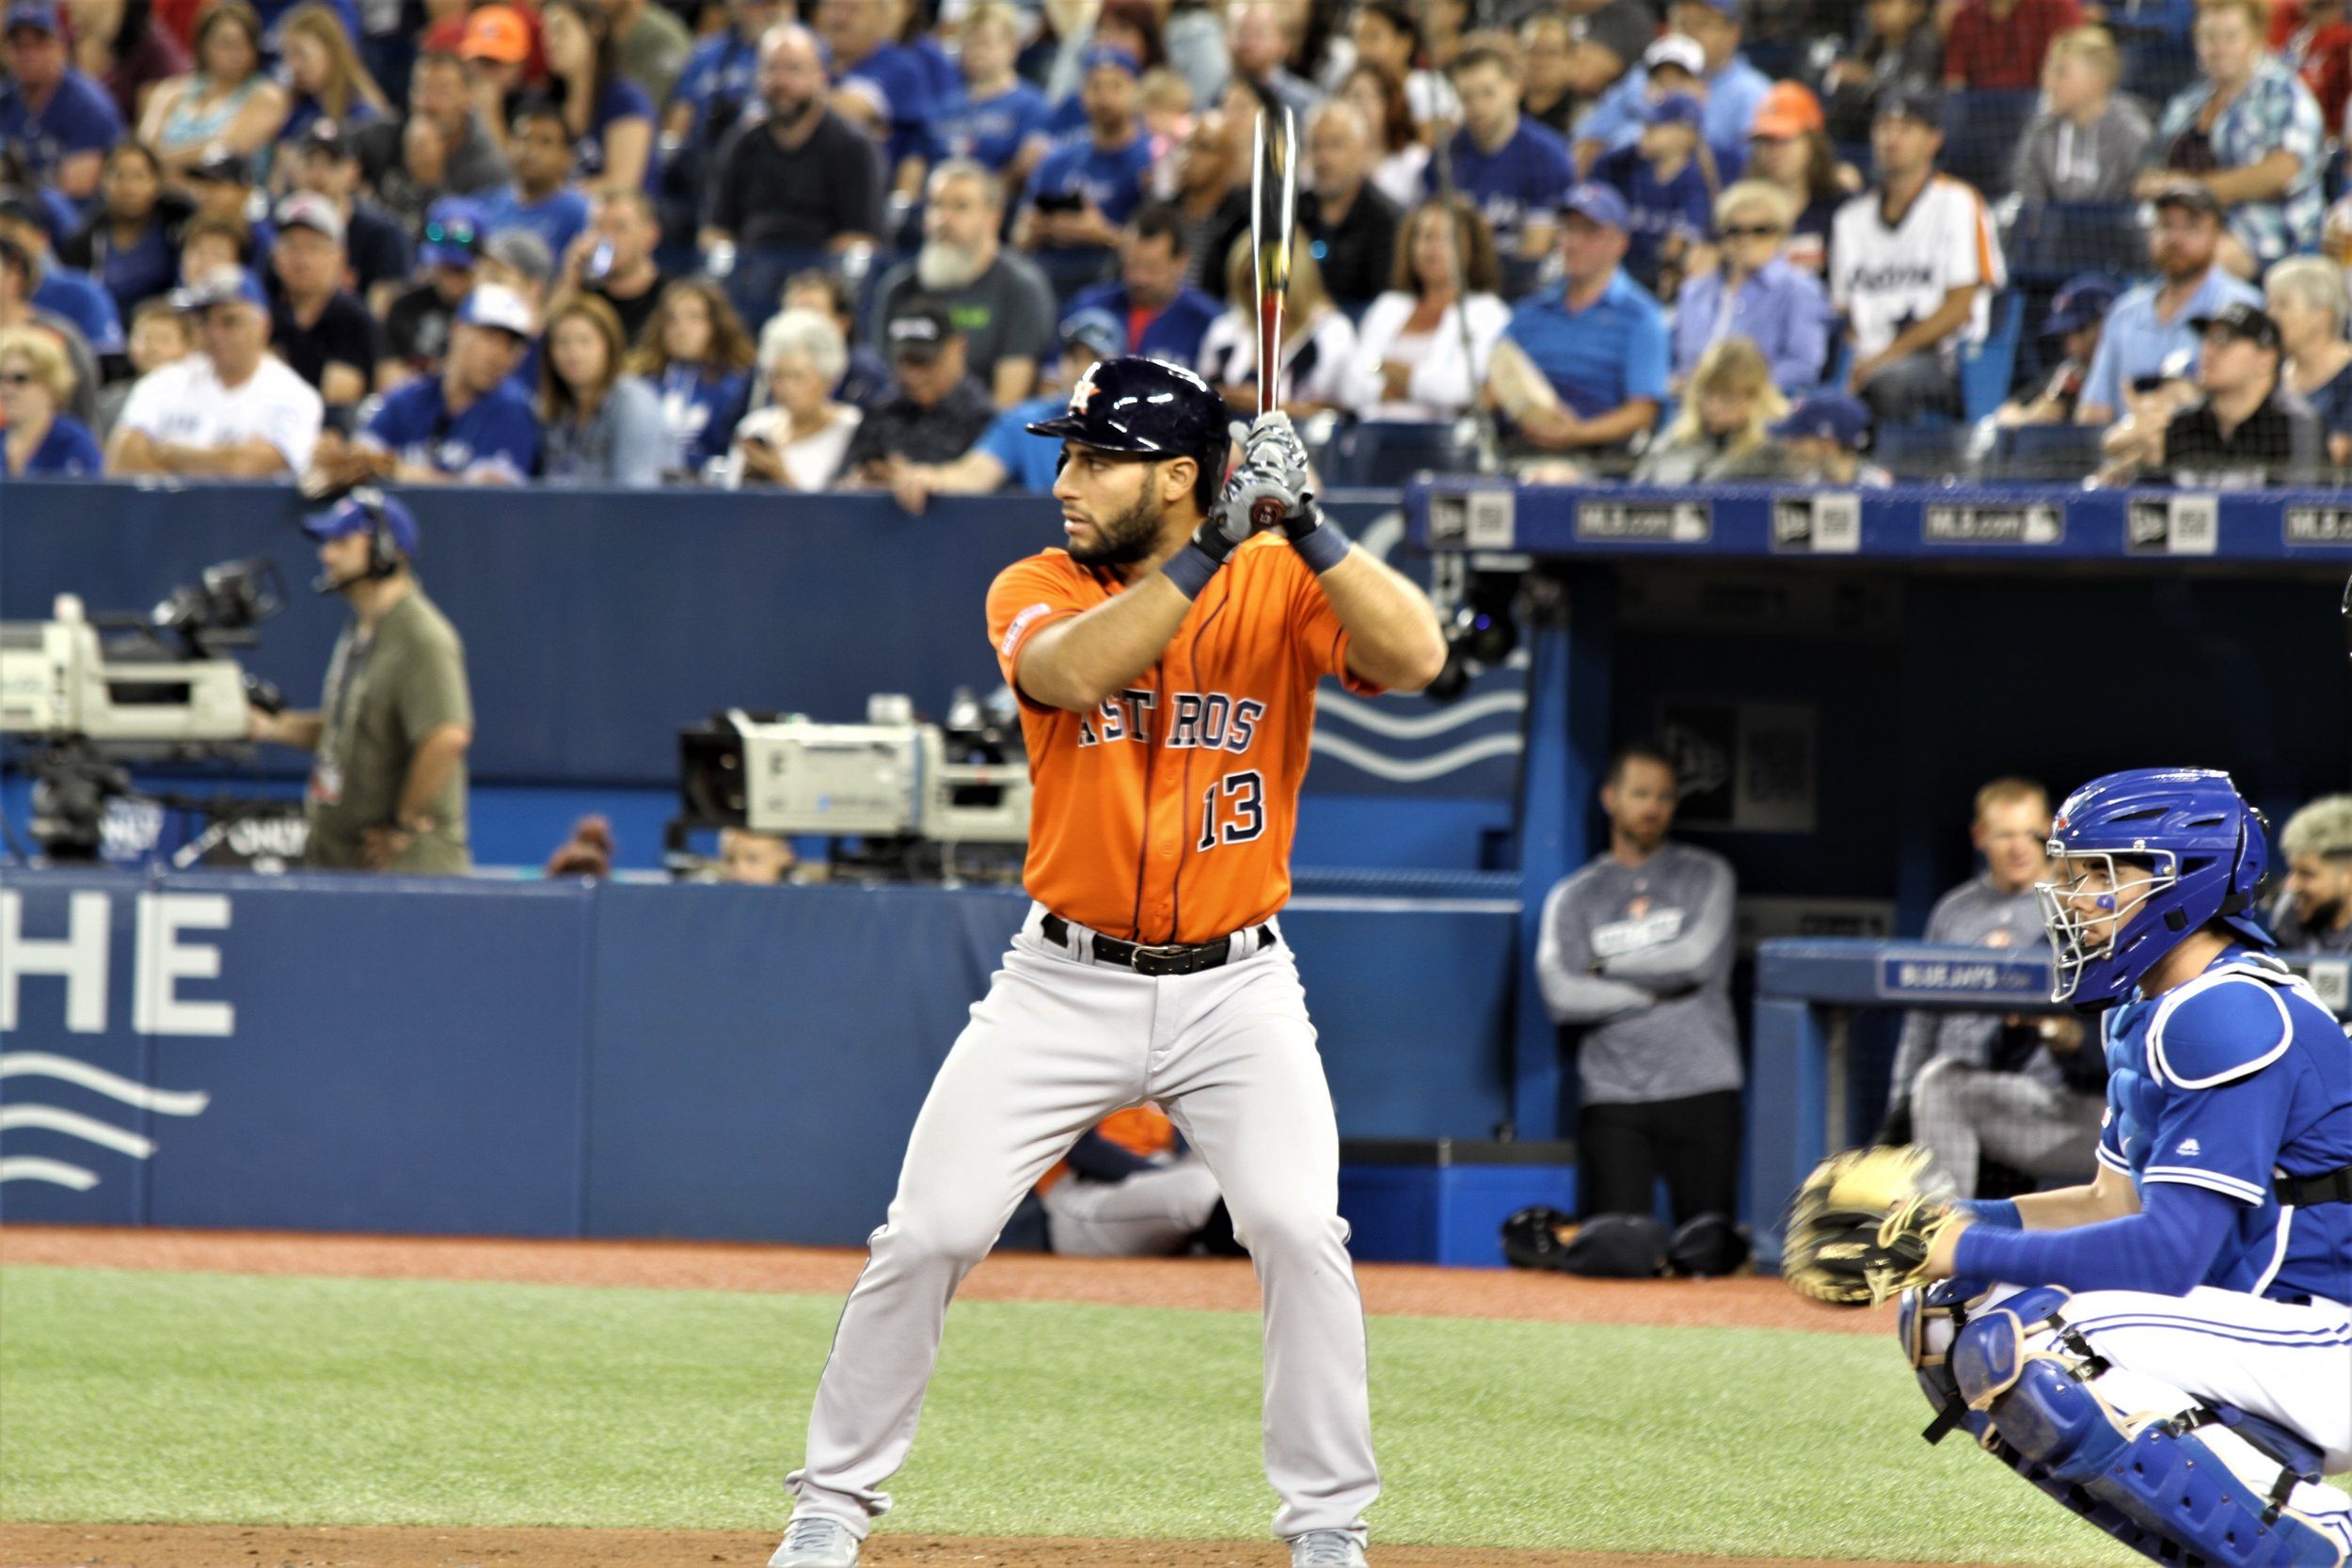 Houston Astros third baseman Abraham Toro (Longueuil, Que.) impressed scout Jim Stevenson (Leaside, Ont.) with his physical tools and his ability to slow down the game and perform under pressure. Photo: J.P. Antonacci